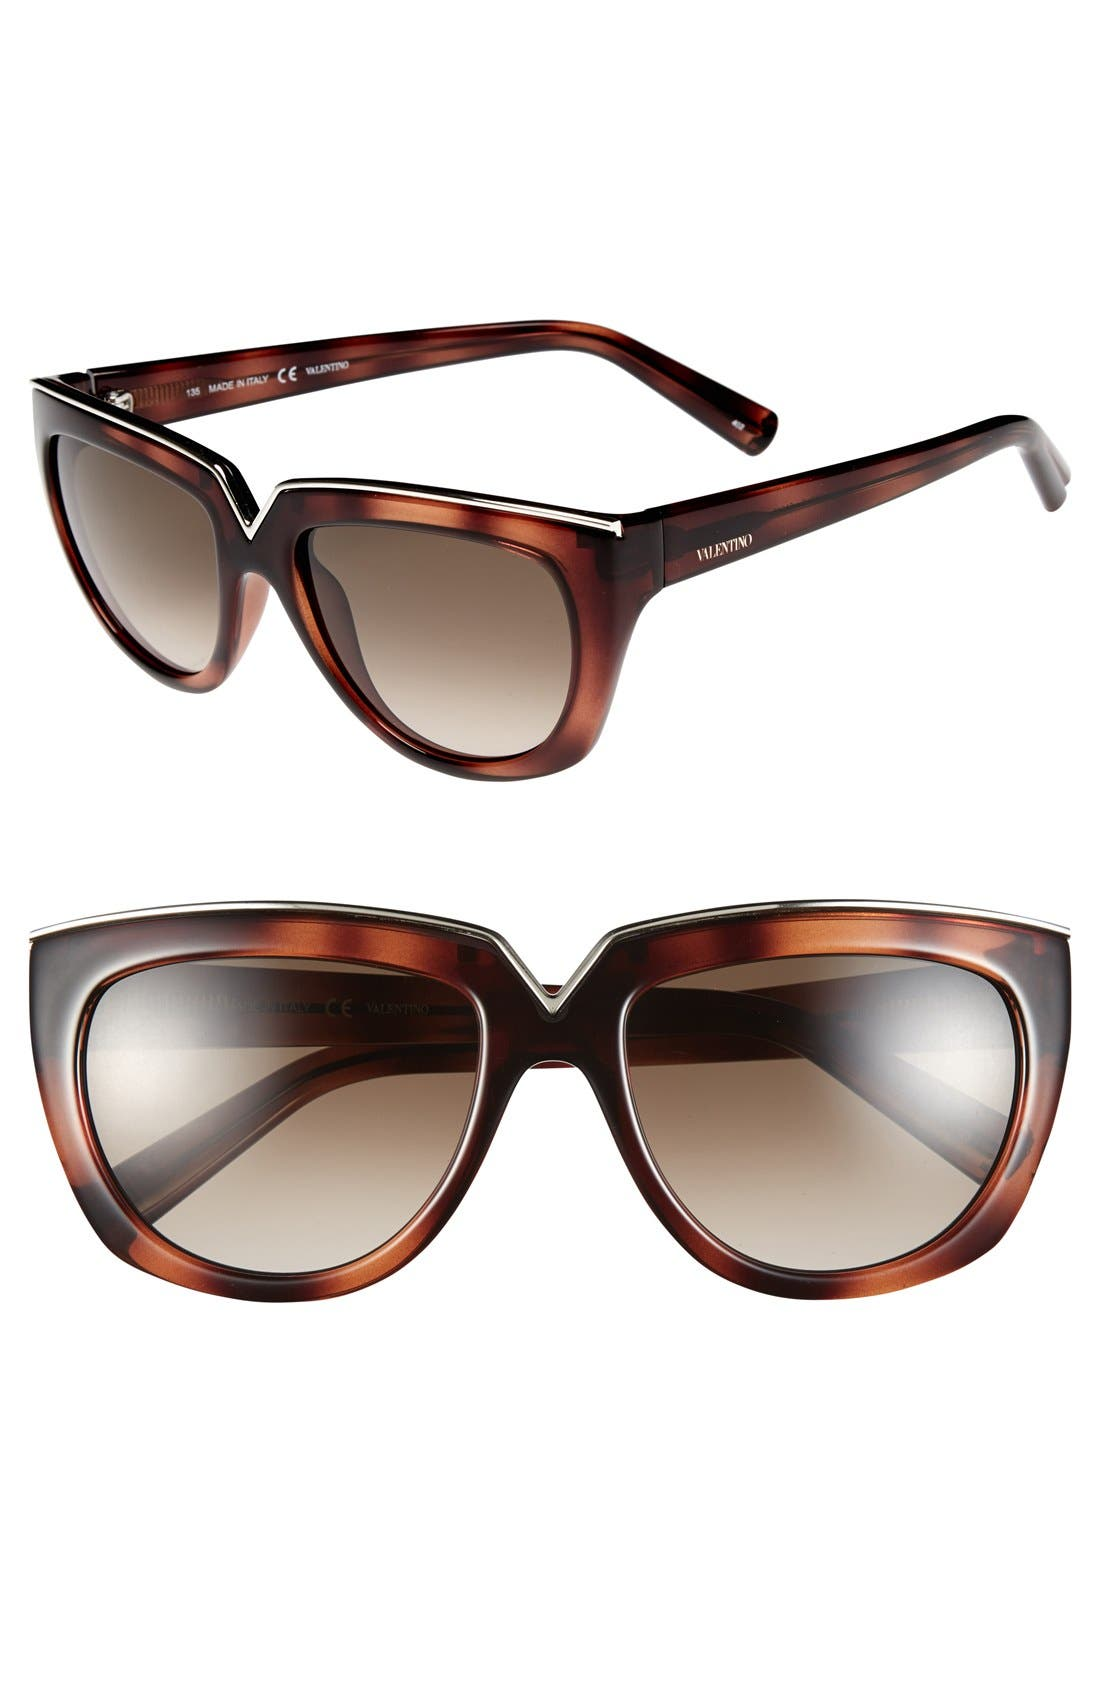 Main Image - Valentino 54mm Gradient Lens Sunglasses